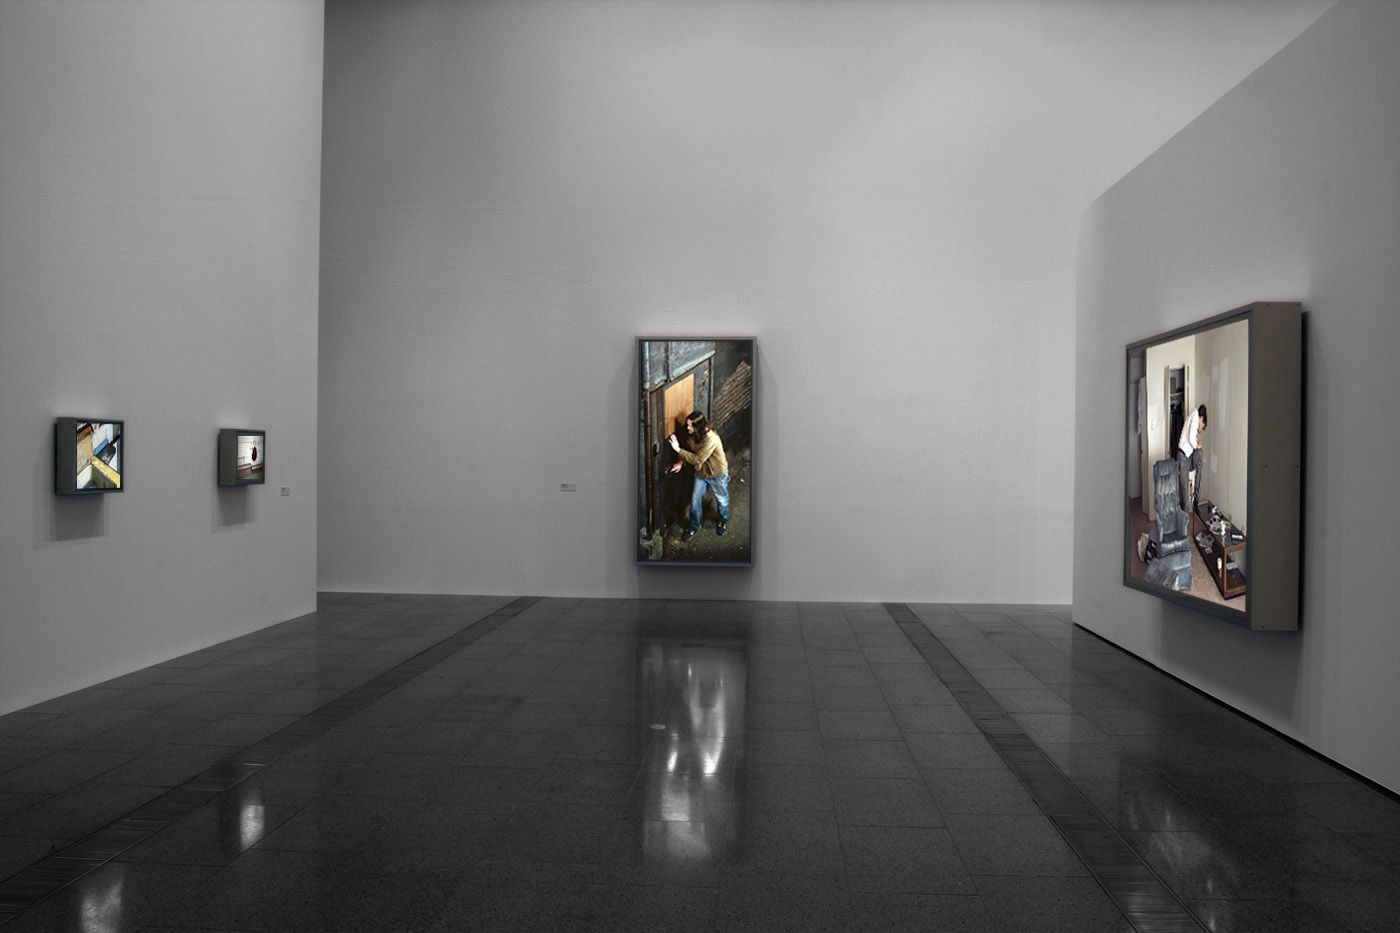 photography installation - Google Search | fotografia | Pinterest | Google  search, Photography and Google